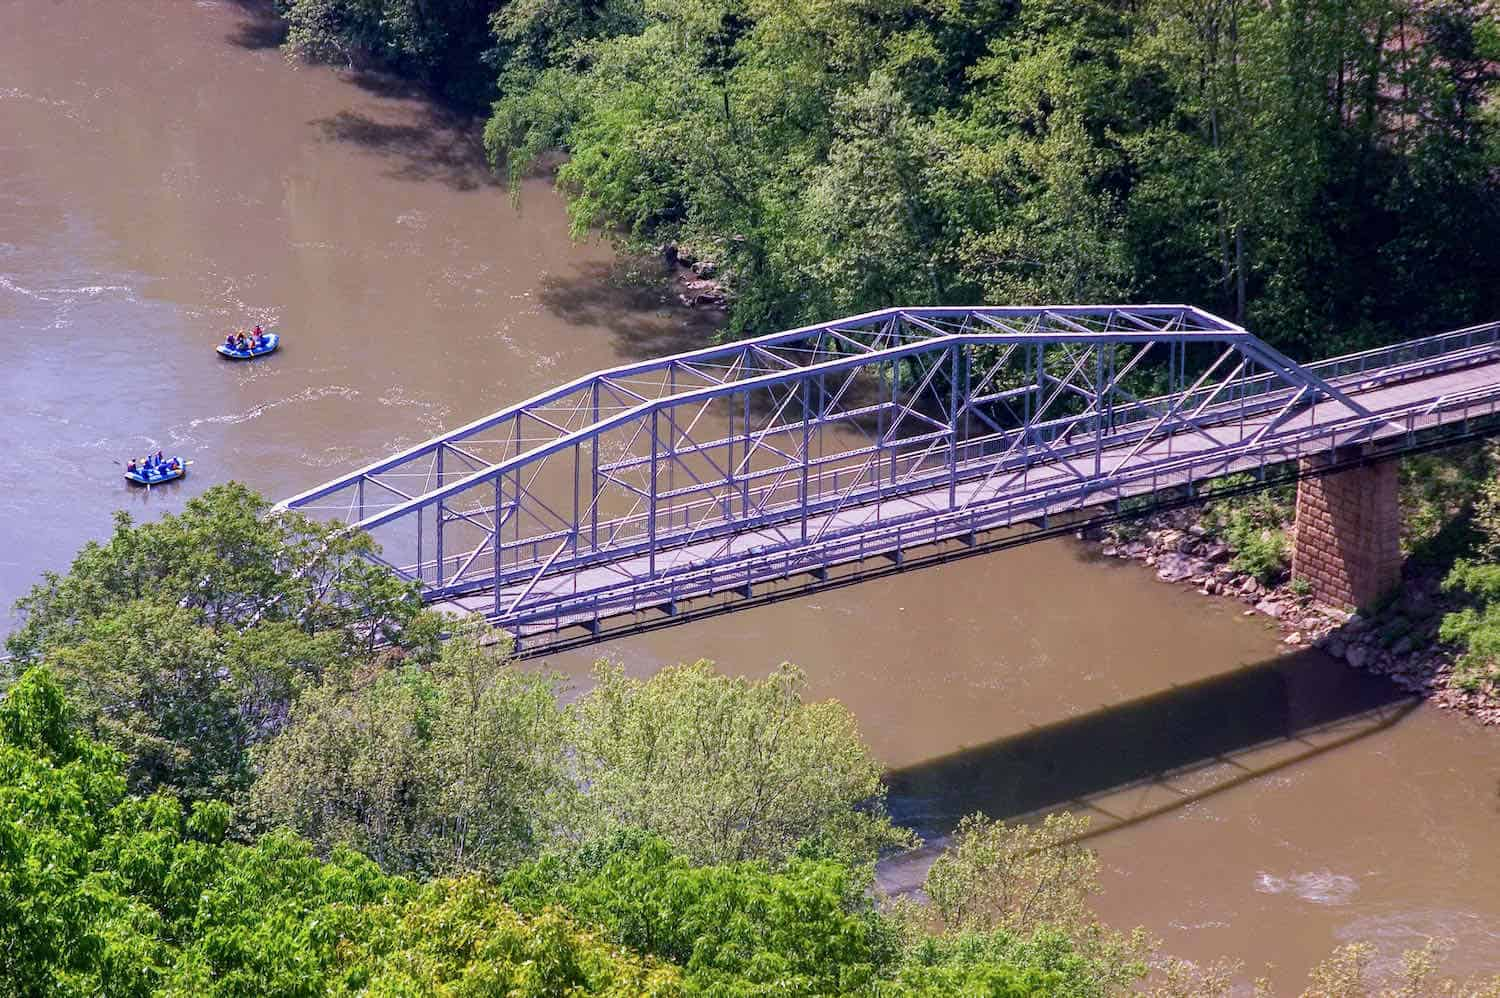 Iron bridge over a muddy river with rafters on the river.